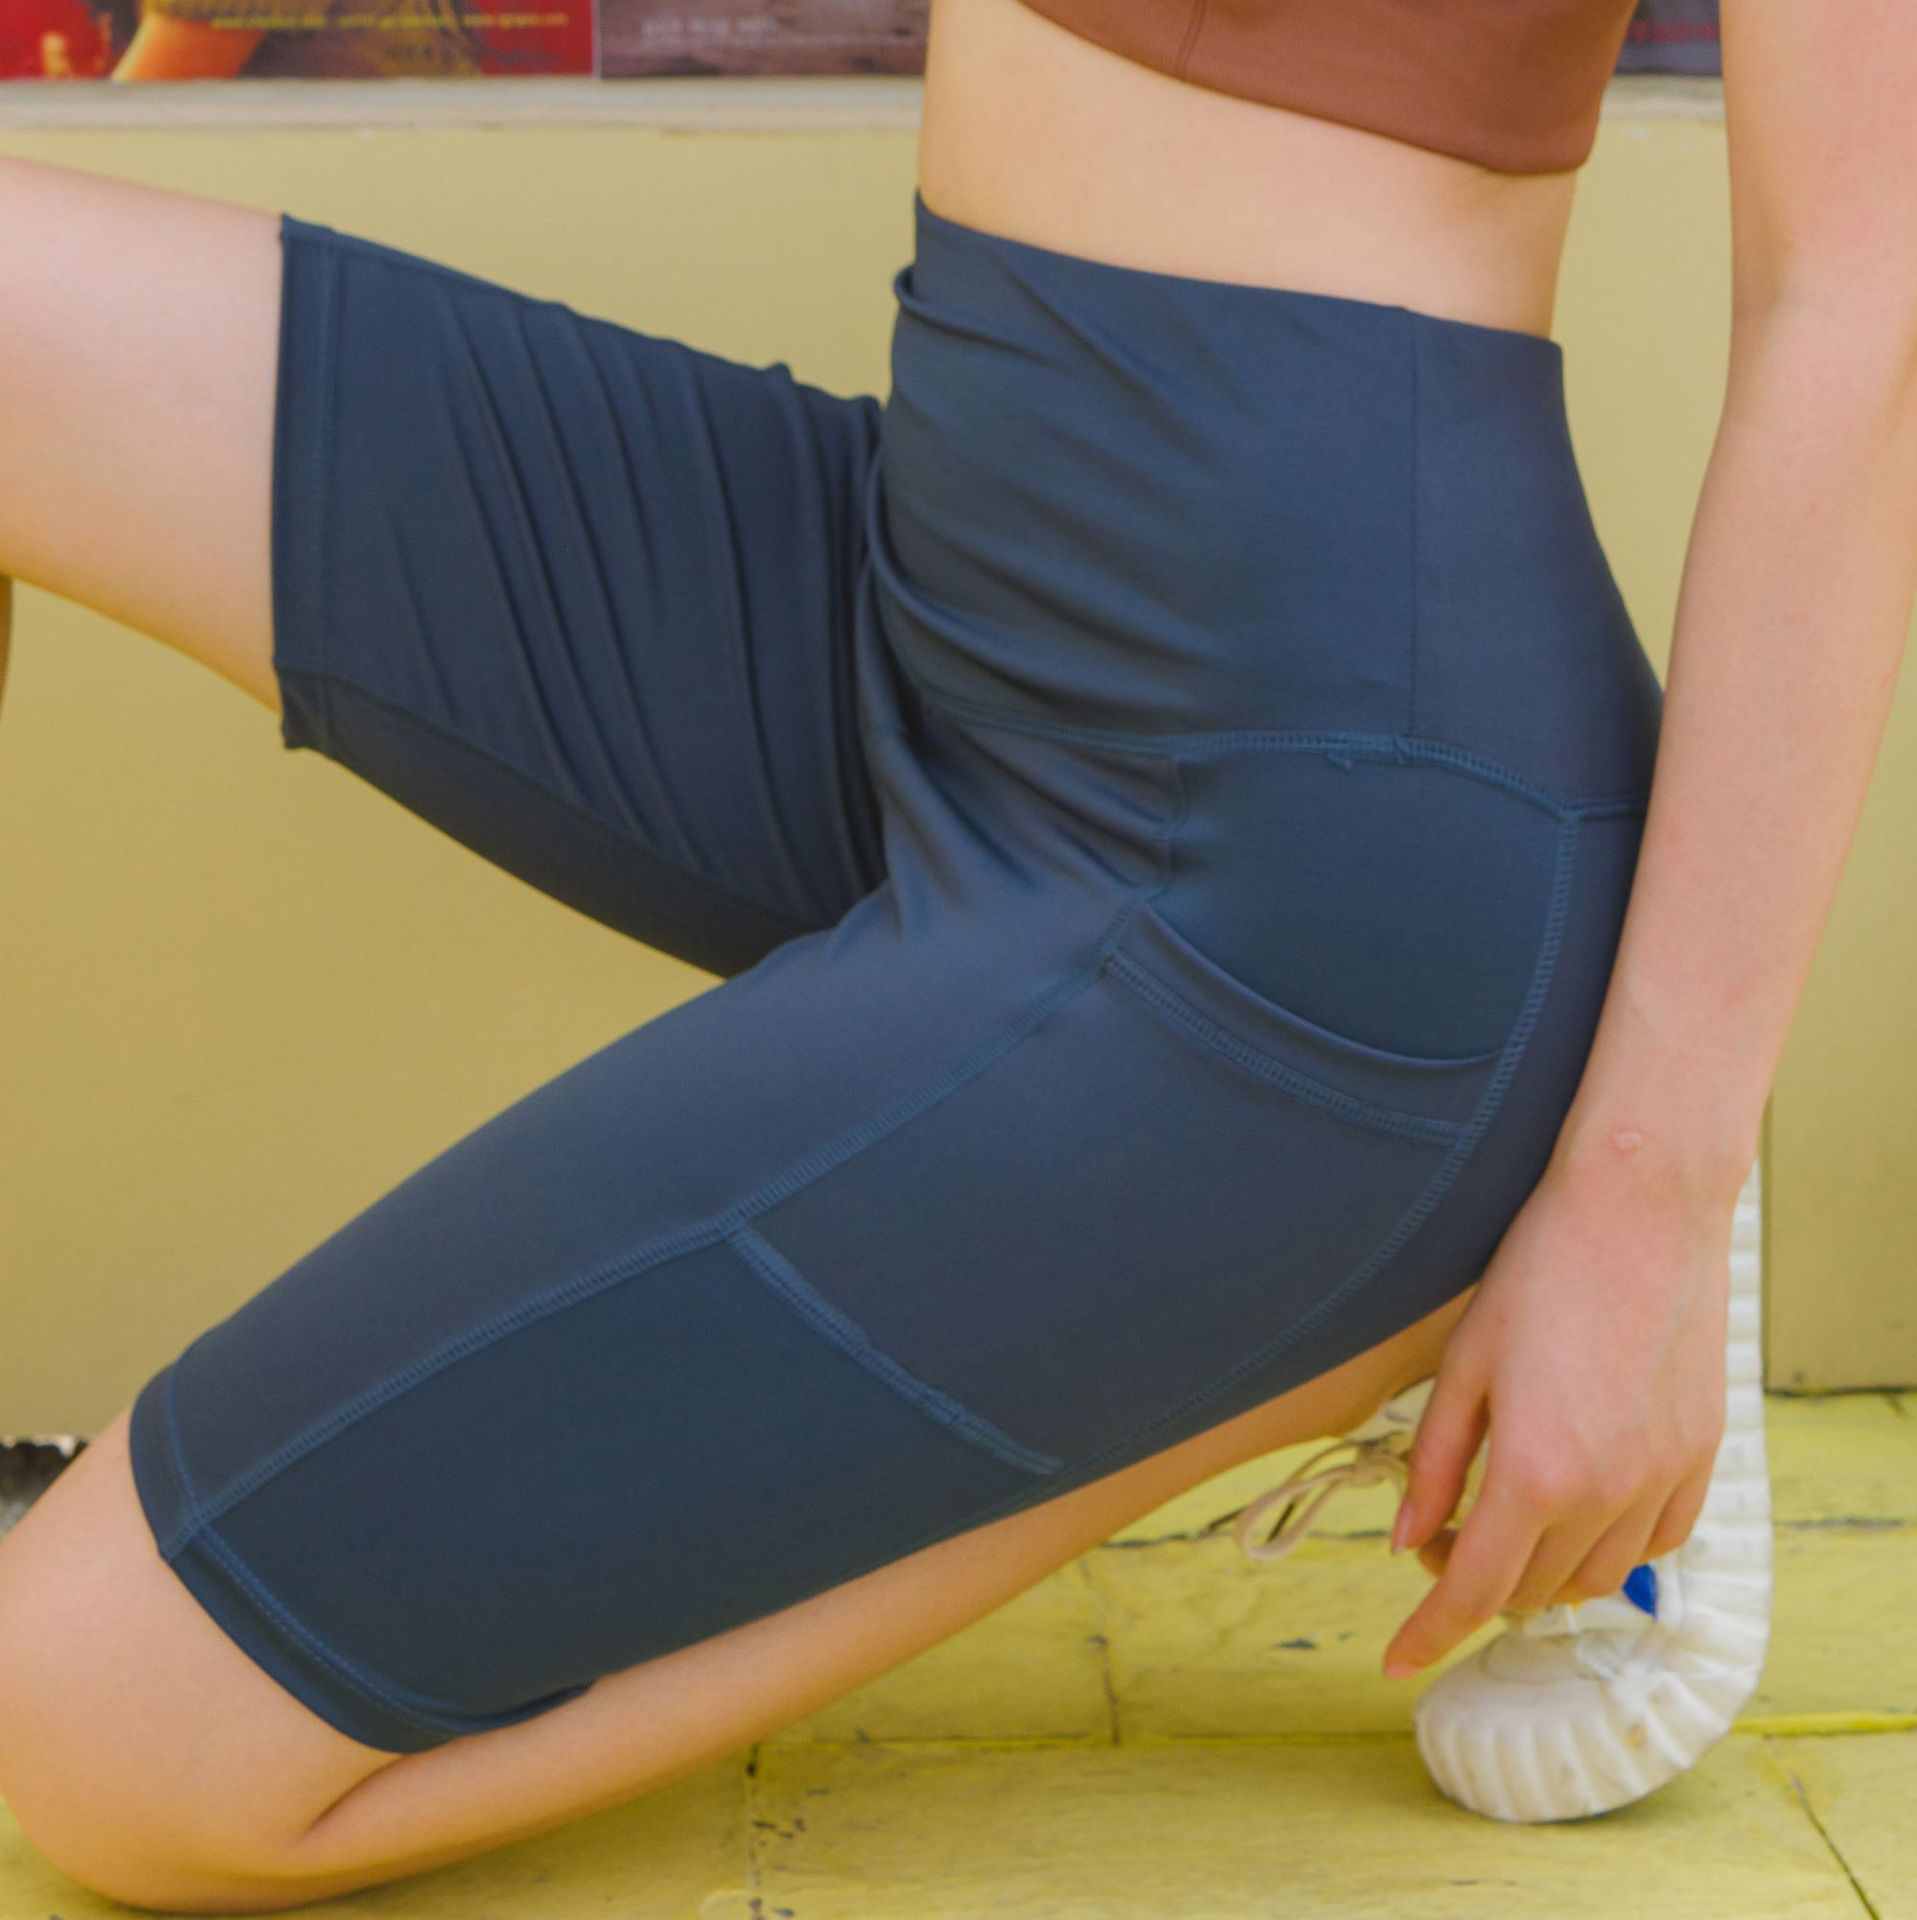 New Style Side Edge Pocket Sports Yoga Tight Shorts High-waisted Belly Holding Breathable Quick-Dry Training Pants Fitness Pants